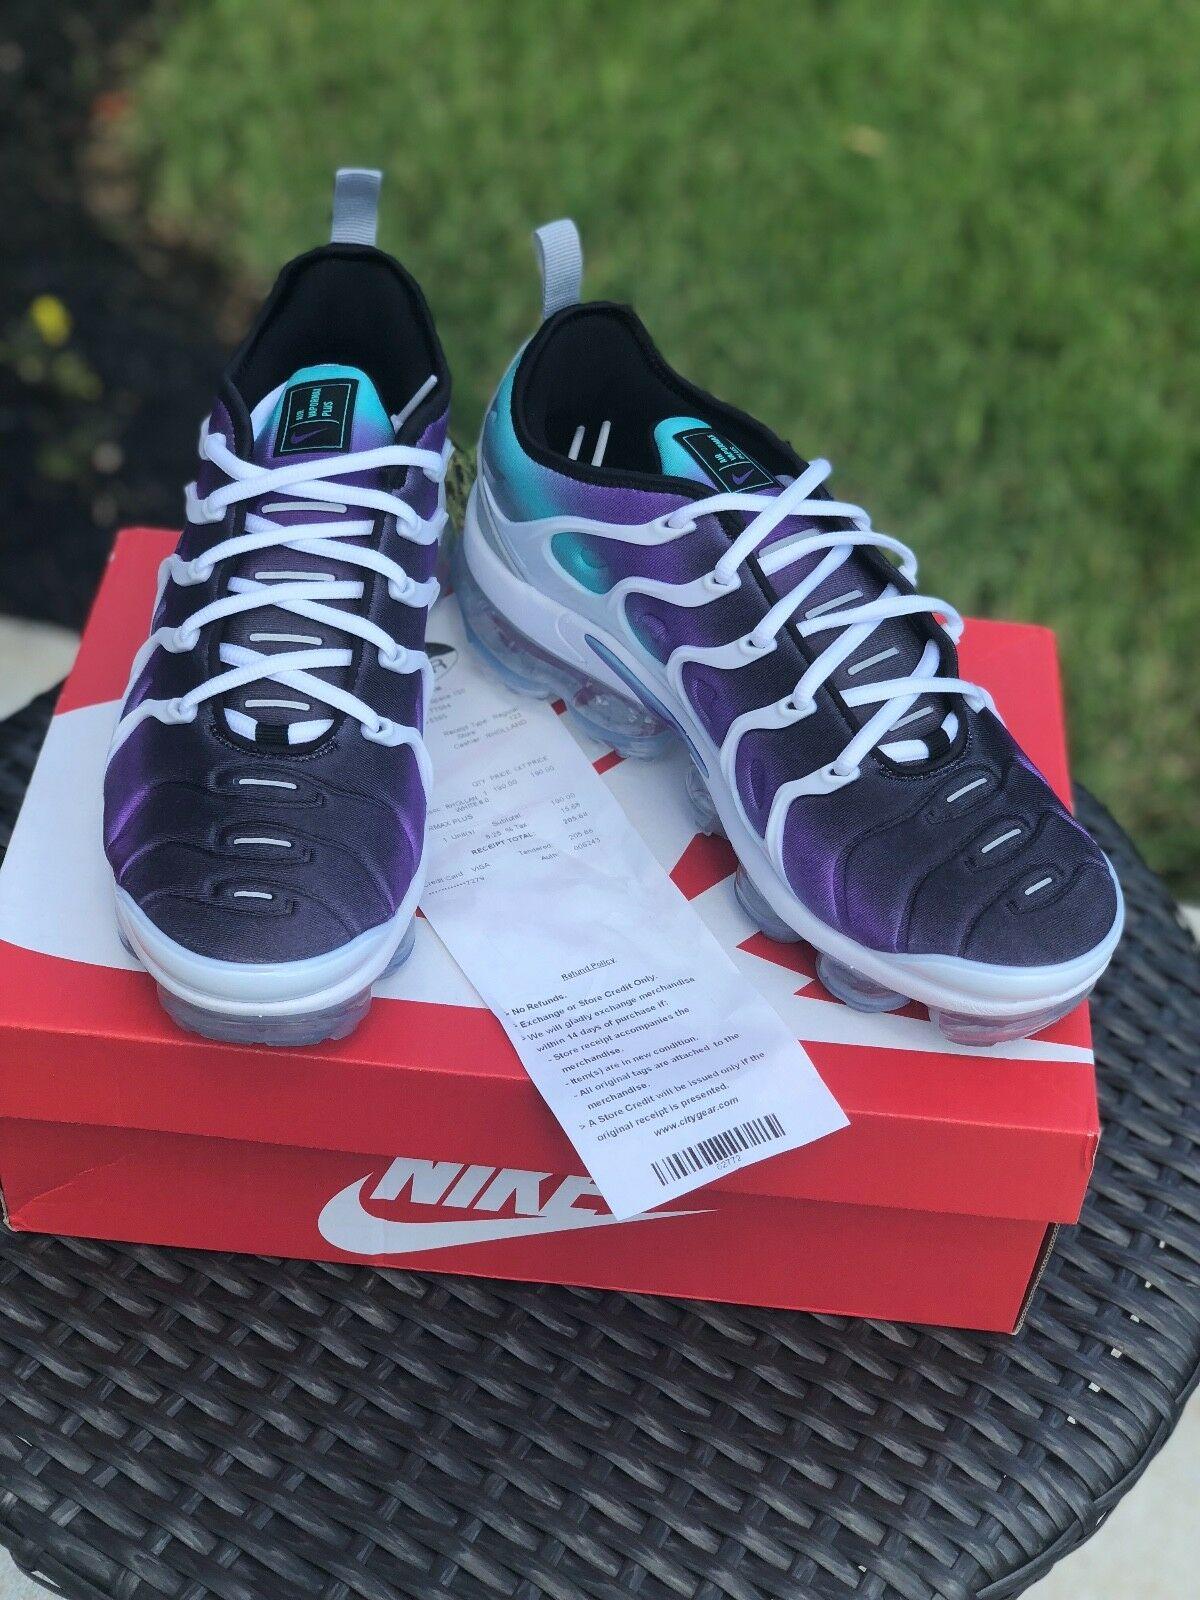 New Nike Air Vapormax Plus White/ Fierce Purple Size 8 w/ receipt